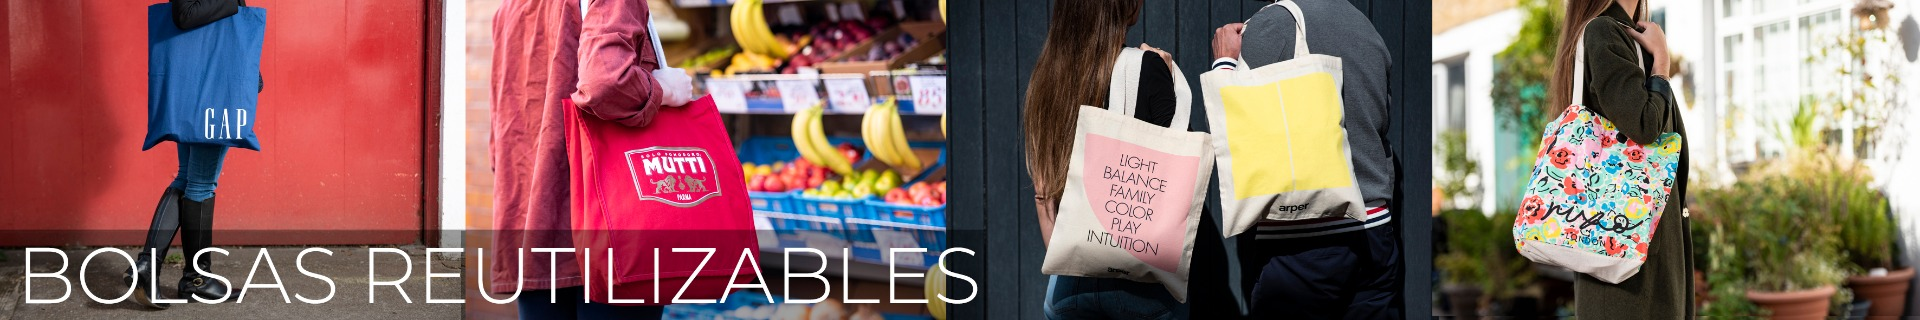 promotional and printed bags and textiles